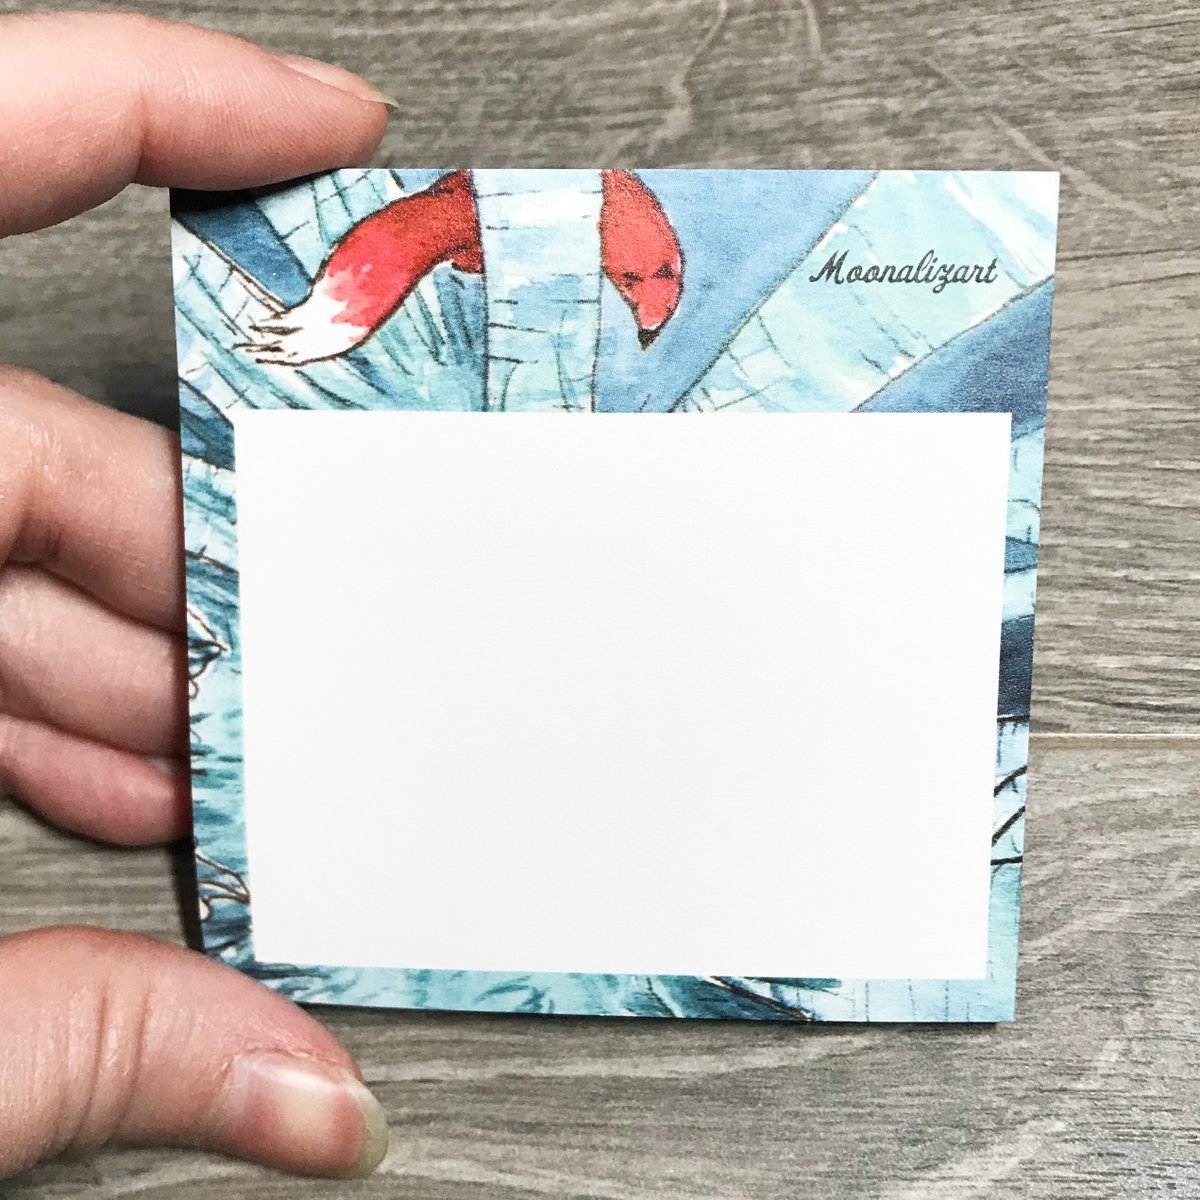 SHOP UPDATE IS LIVE!  You will find several items in my shop today : - Sticky notes (like the one in the picture) - Greeting cards (they come with an envelope) - A4 prints - A5 prints - Small prints - Mini prints  #shopupdate #artprintspic.twitter.com/8seC20BcP5